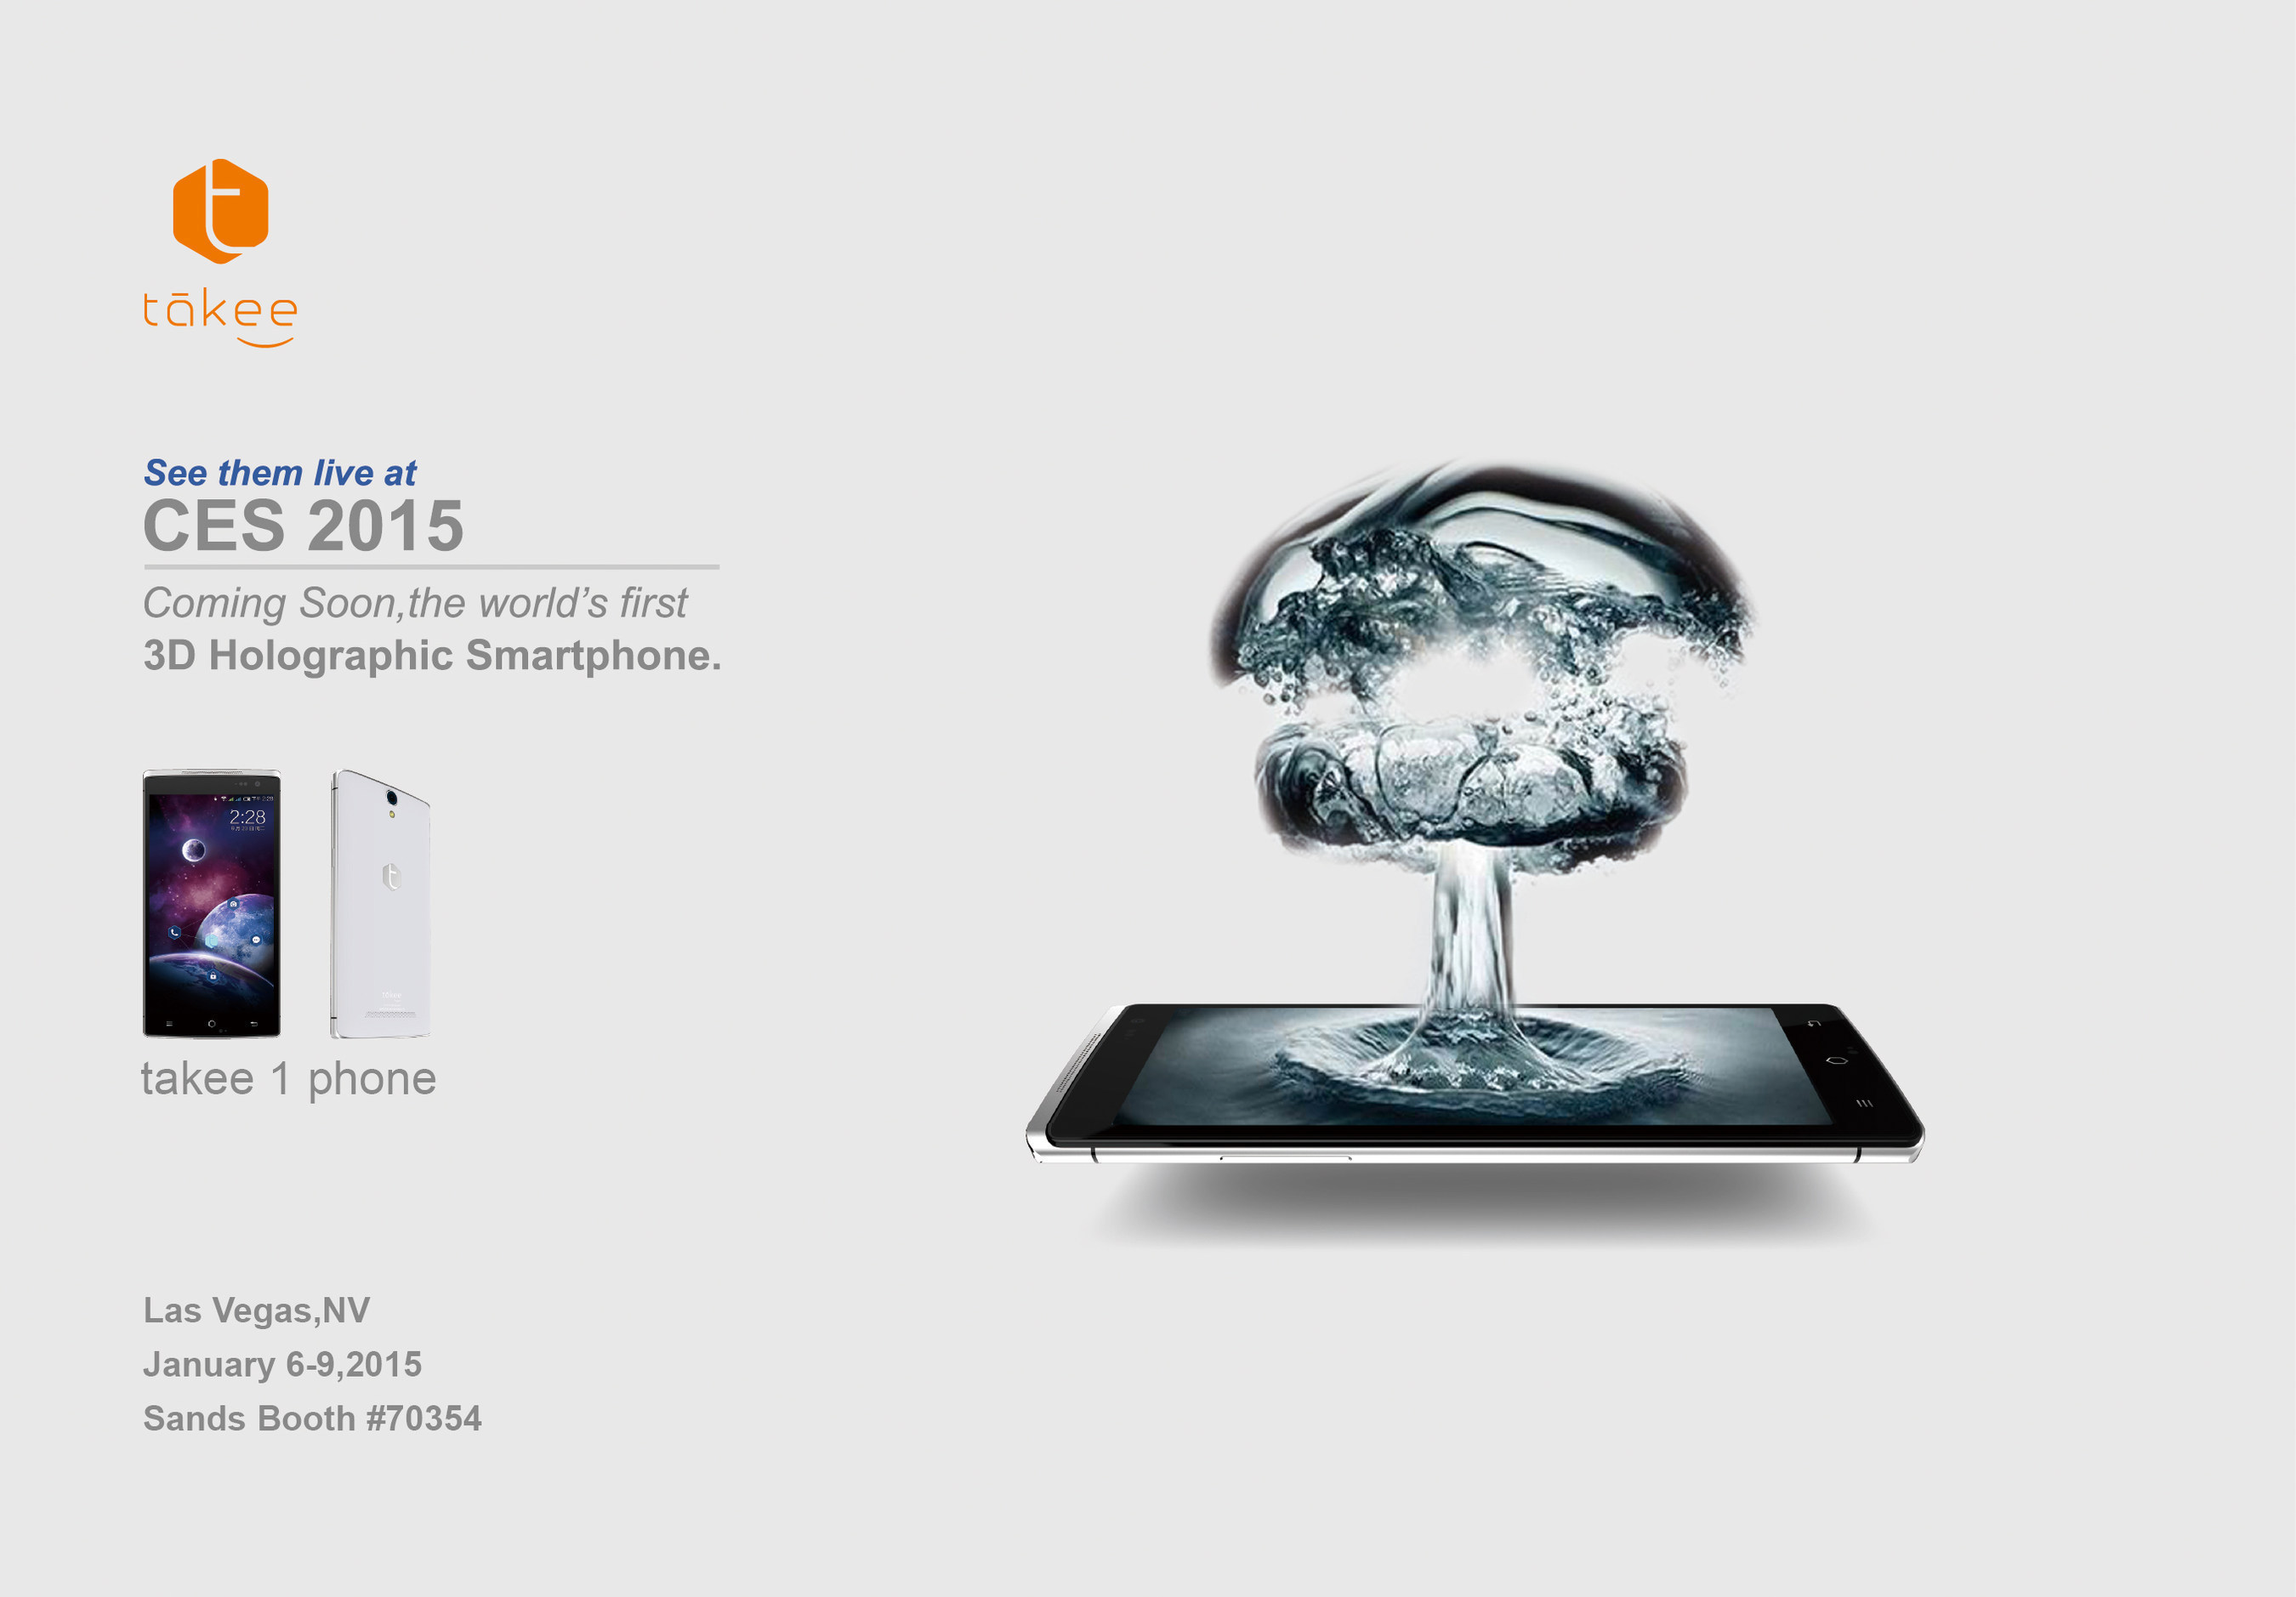 takee1 Holographic Smartphone Wins 2015 CES Innovations Award